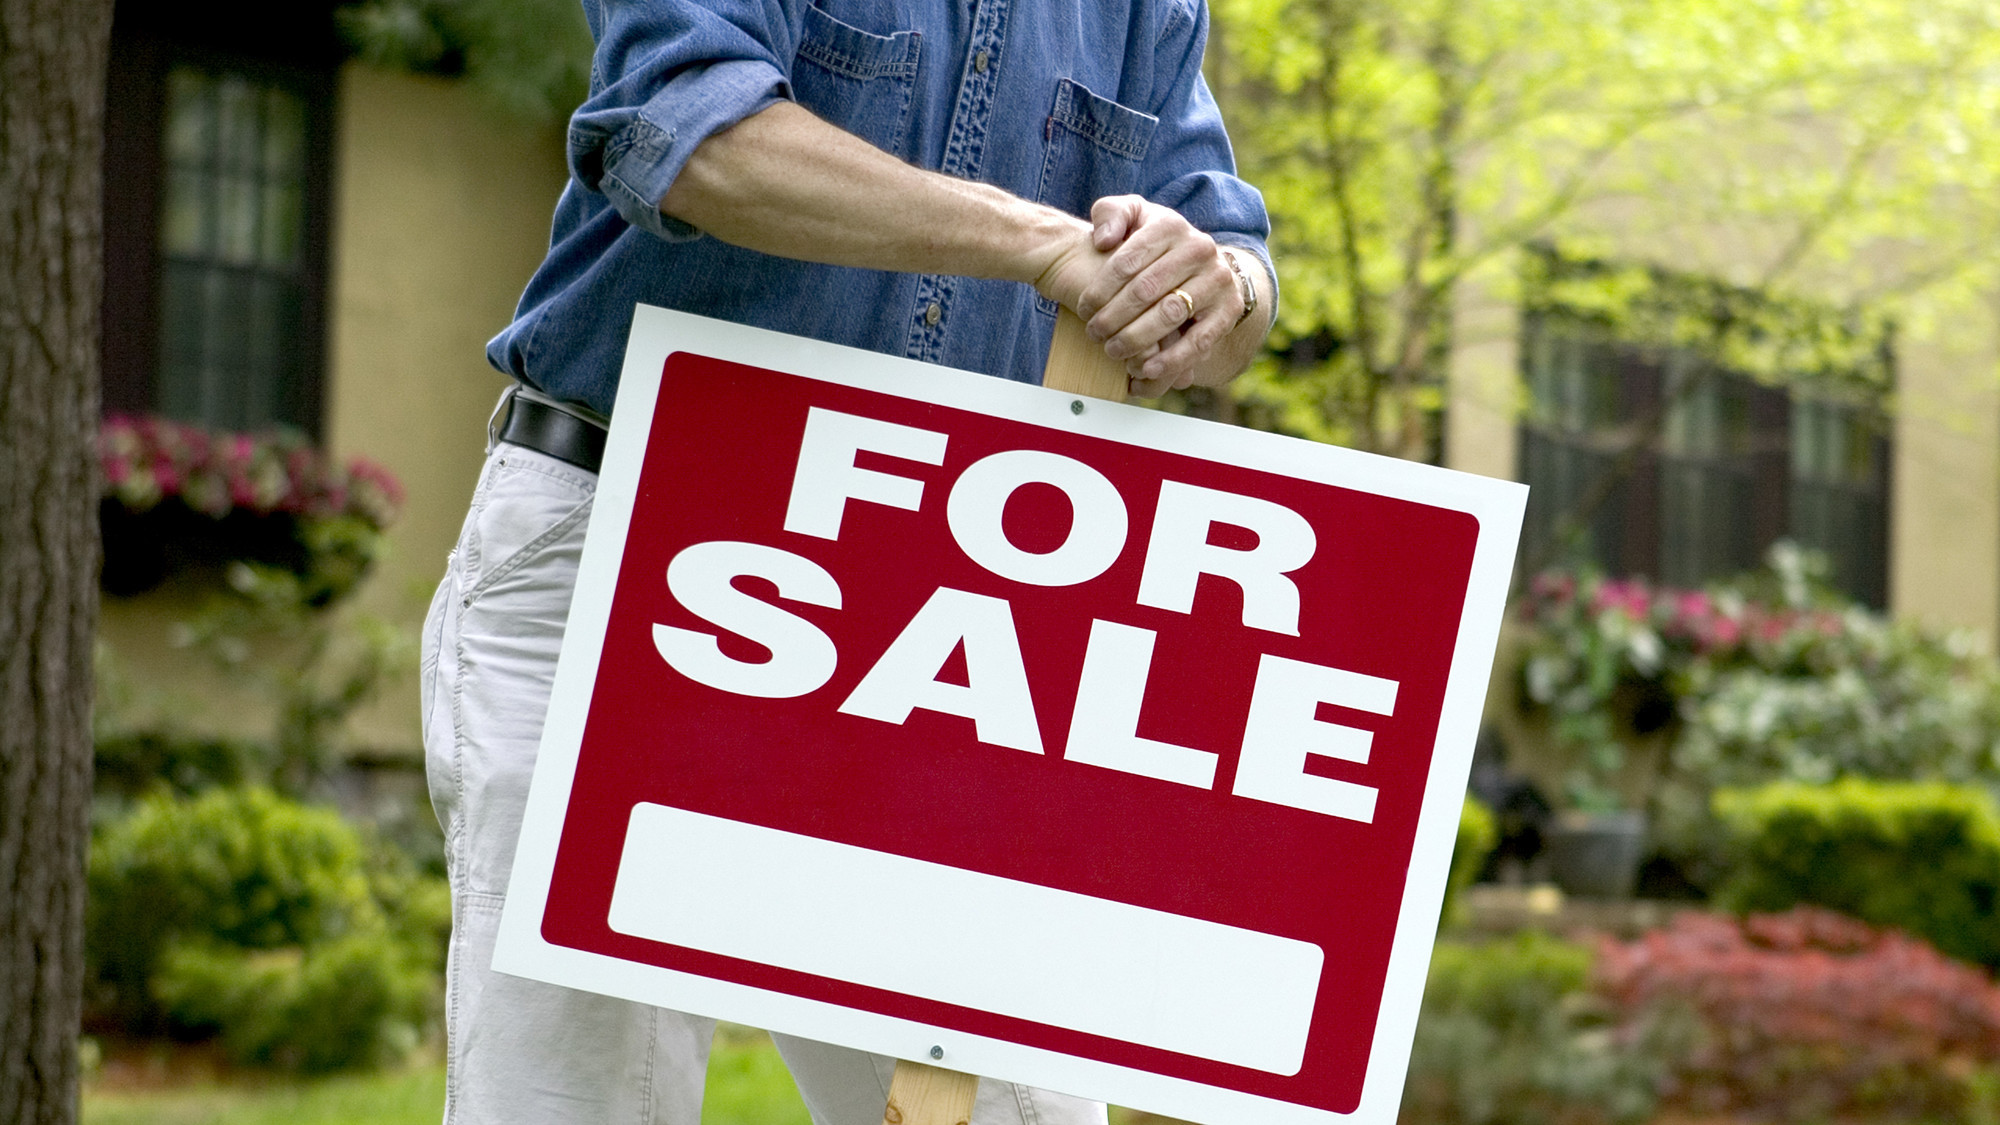 FSBO home sales hit all-time low. Here's what it means for buyers and sellers.